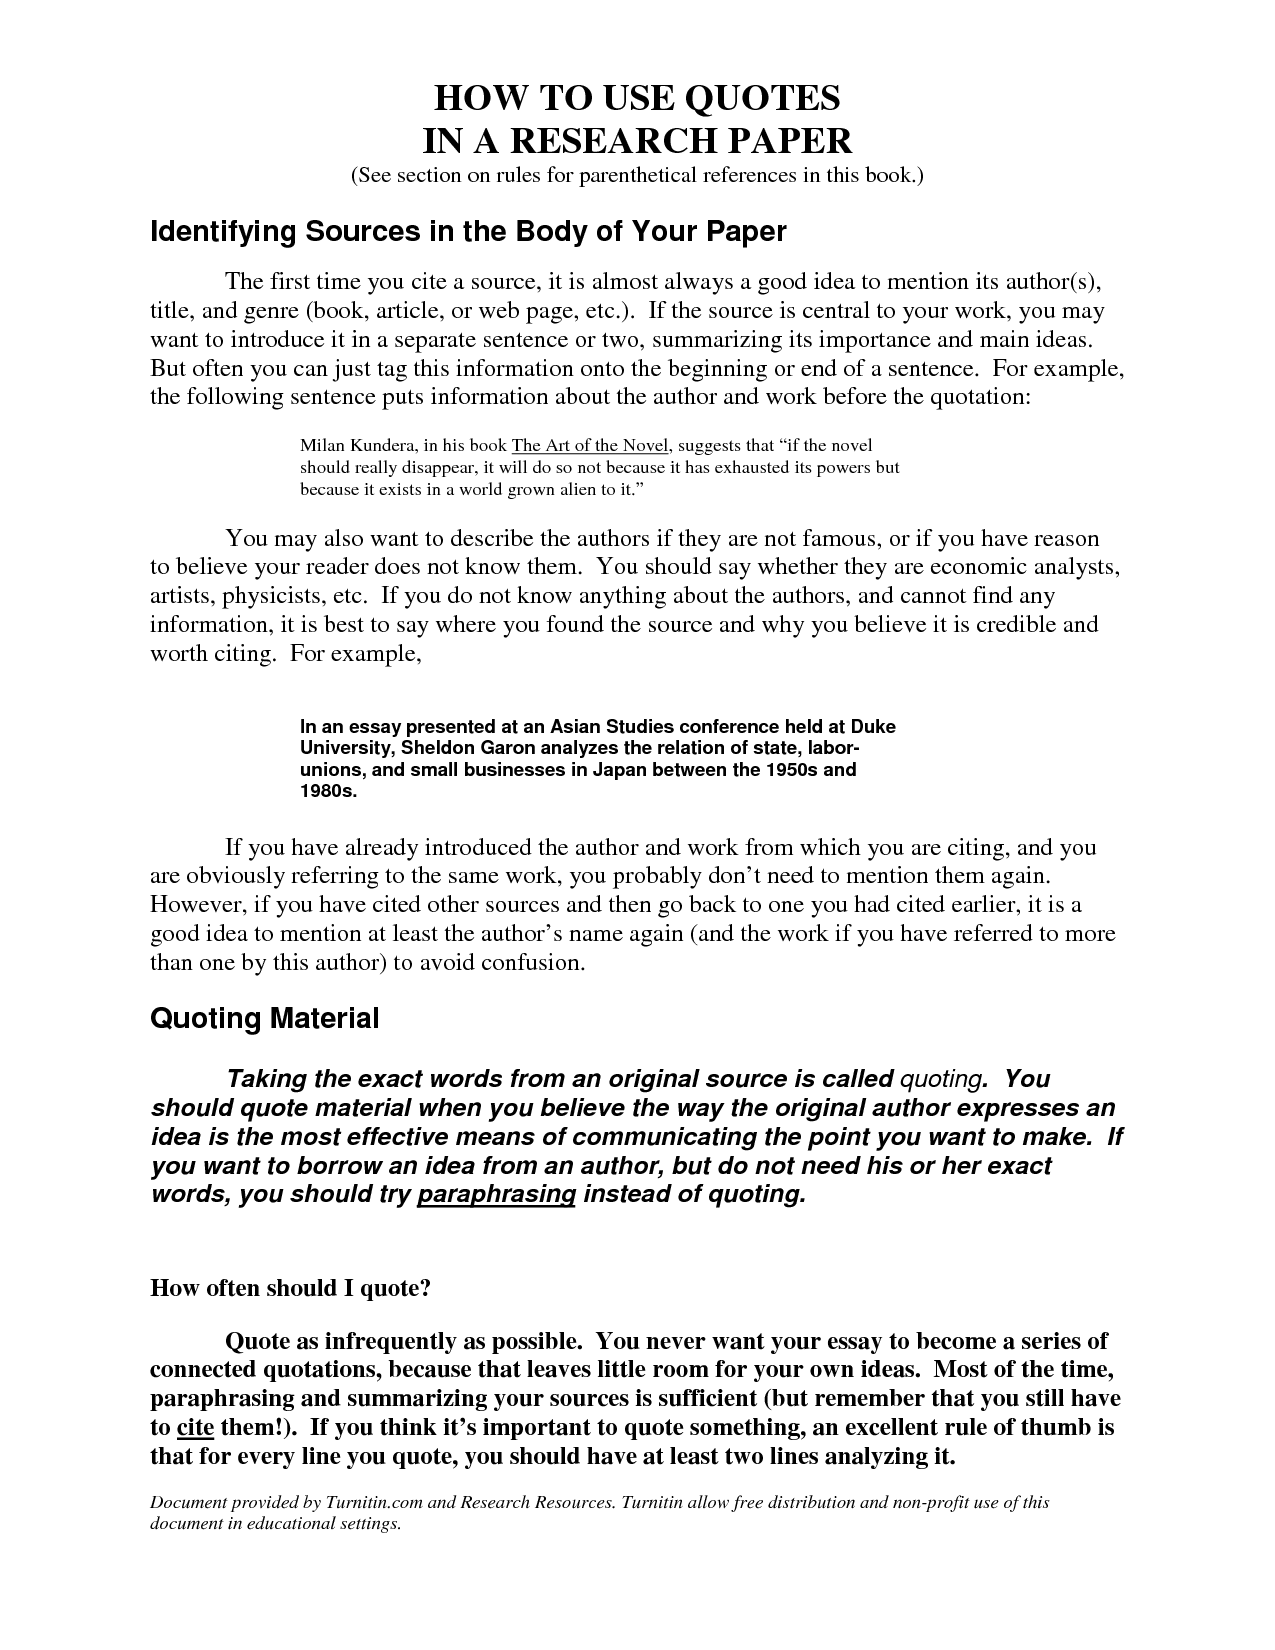 003 Best Solutions Of Writing Quotes In Essays Marvelous Embedding On Quotestopics Essay Example Quoting Frightening An A Book Harvard Mla Full